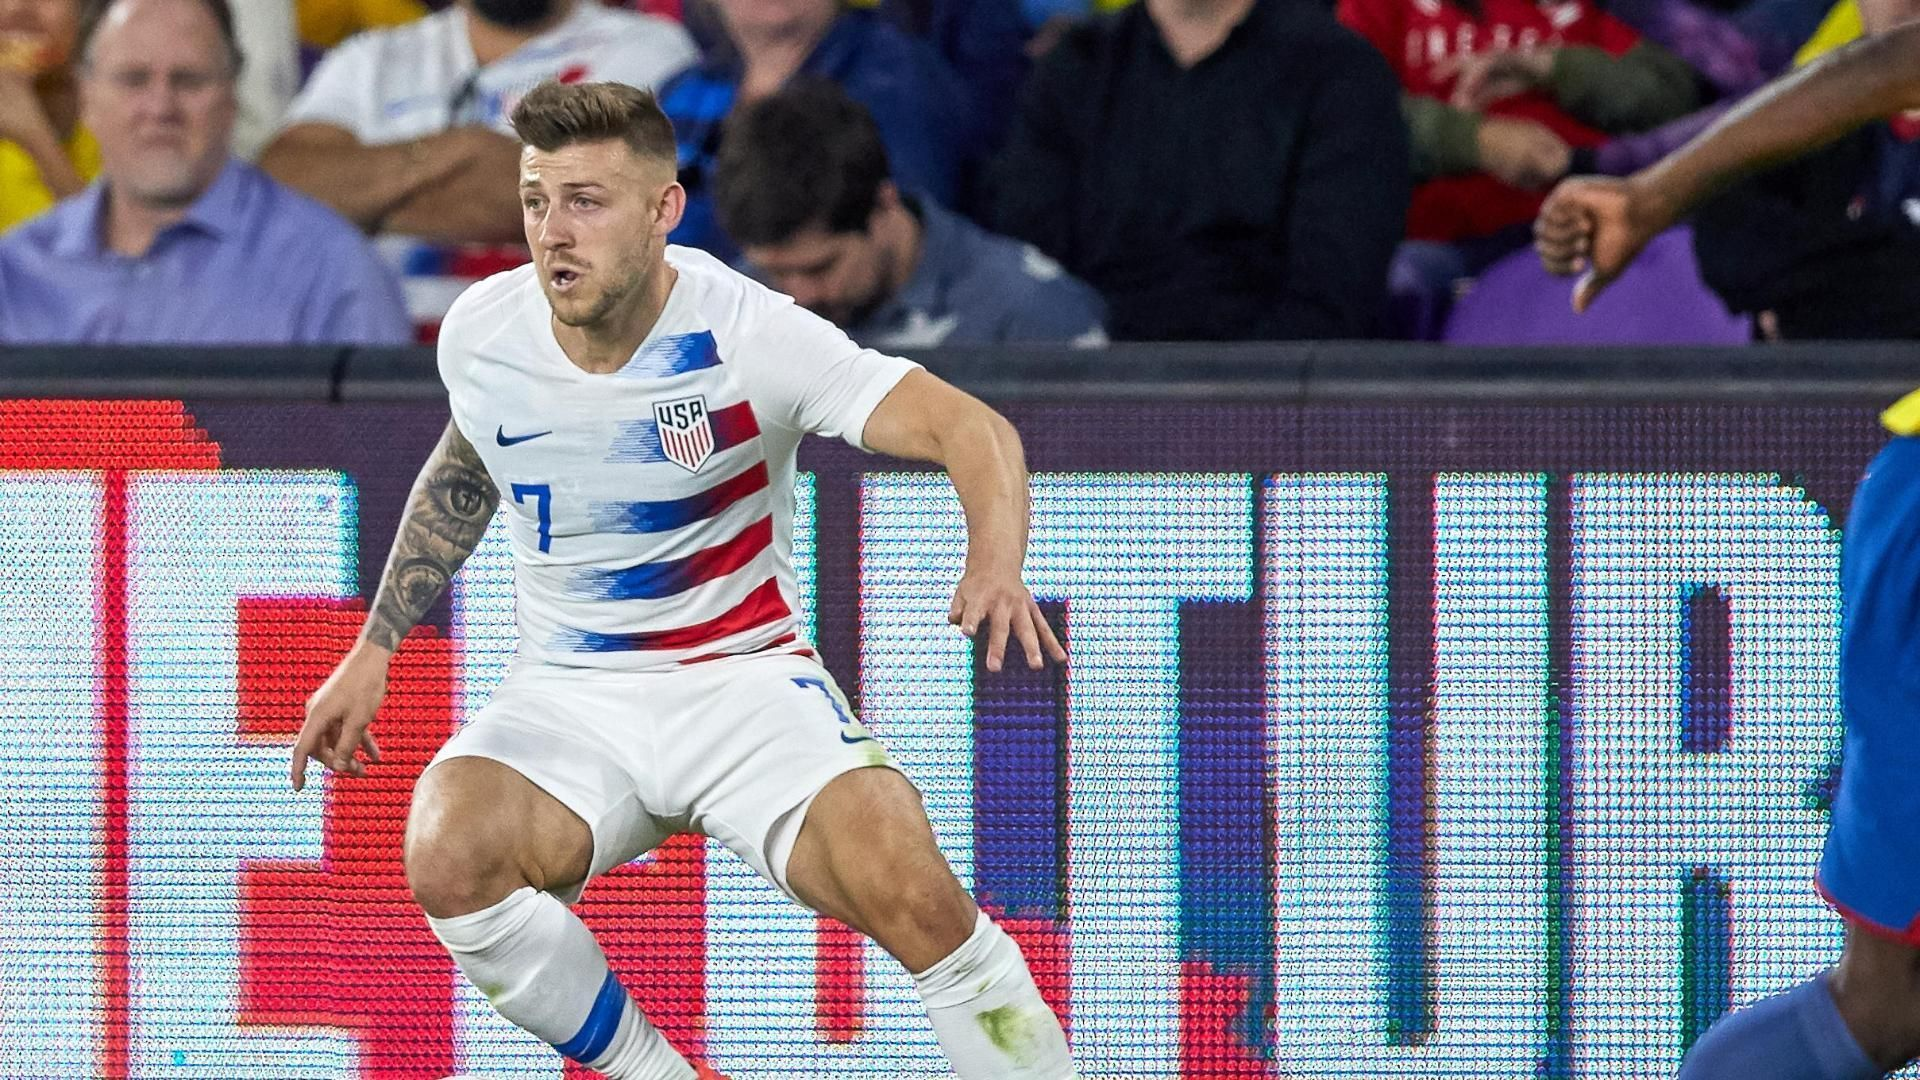 USMNT's Arriola denied from point-blank range